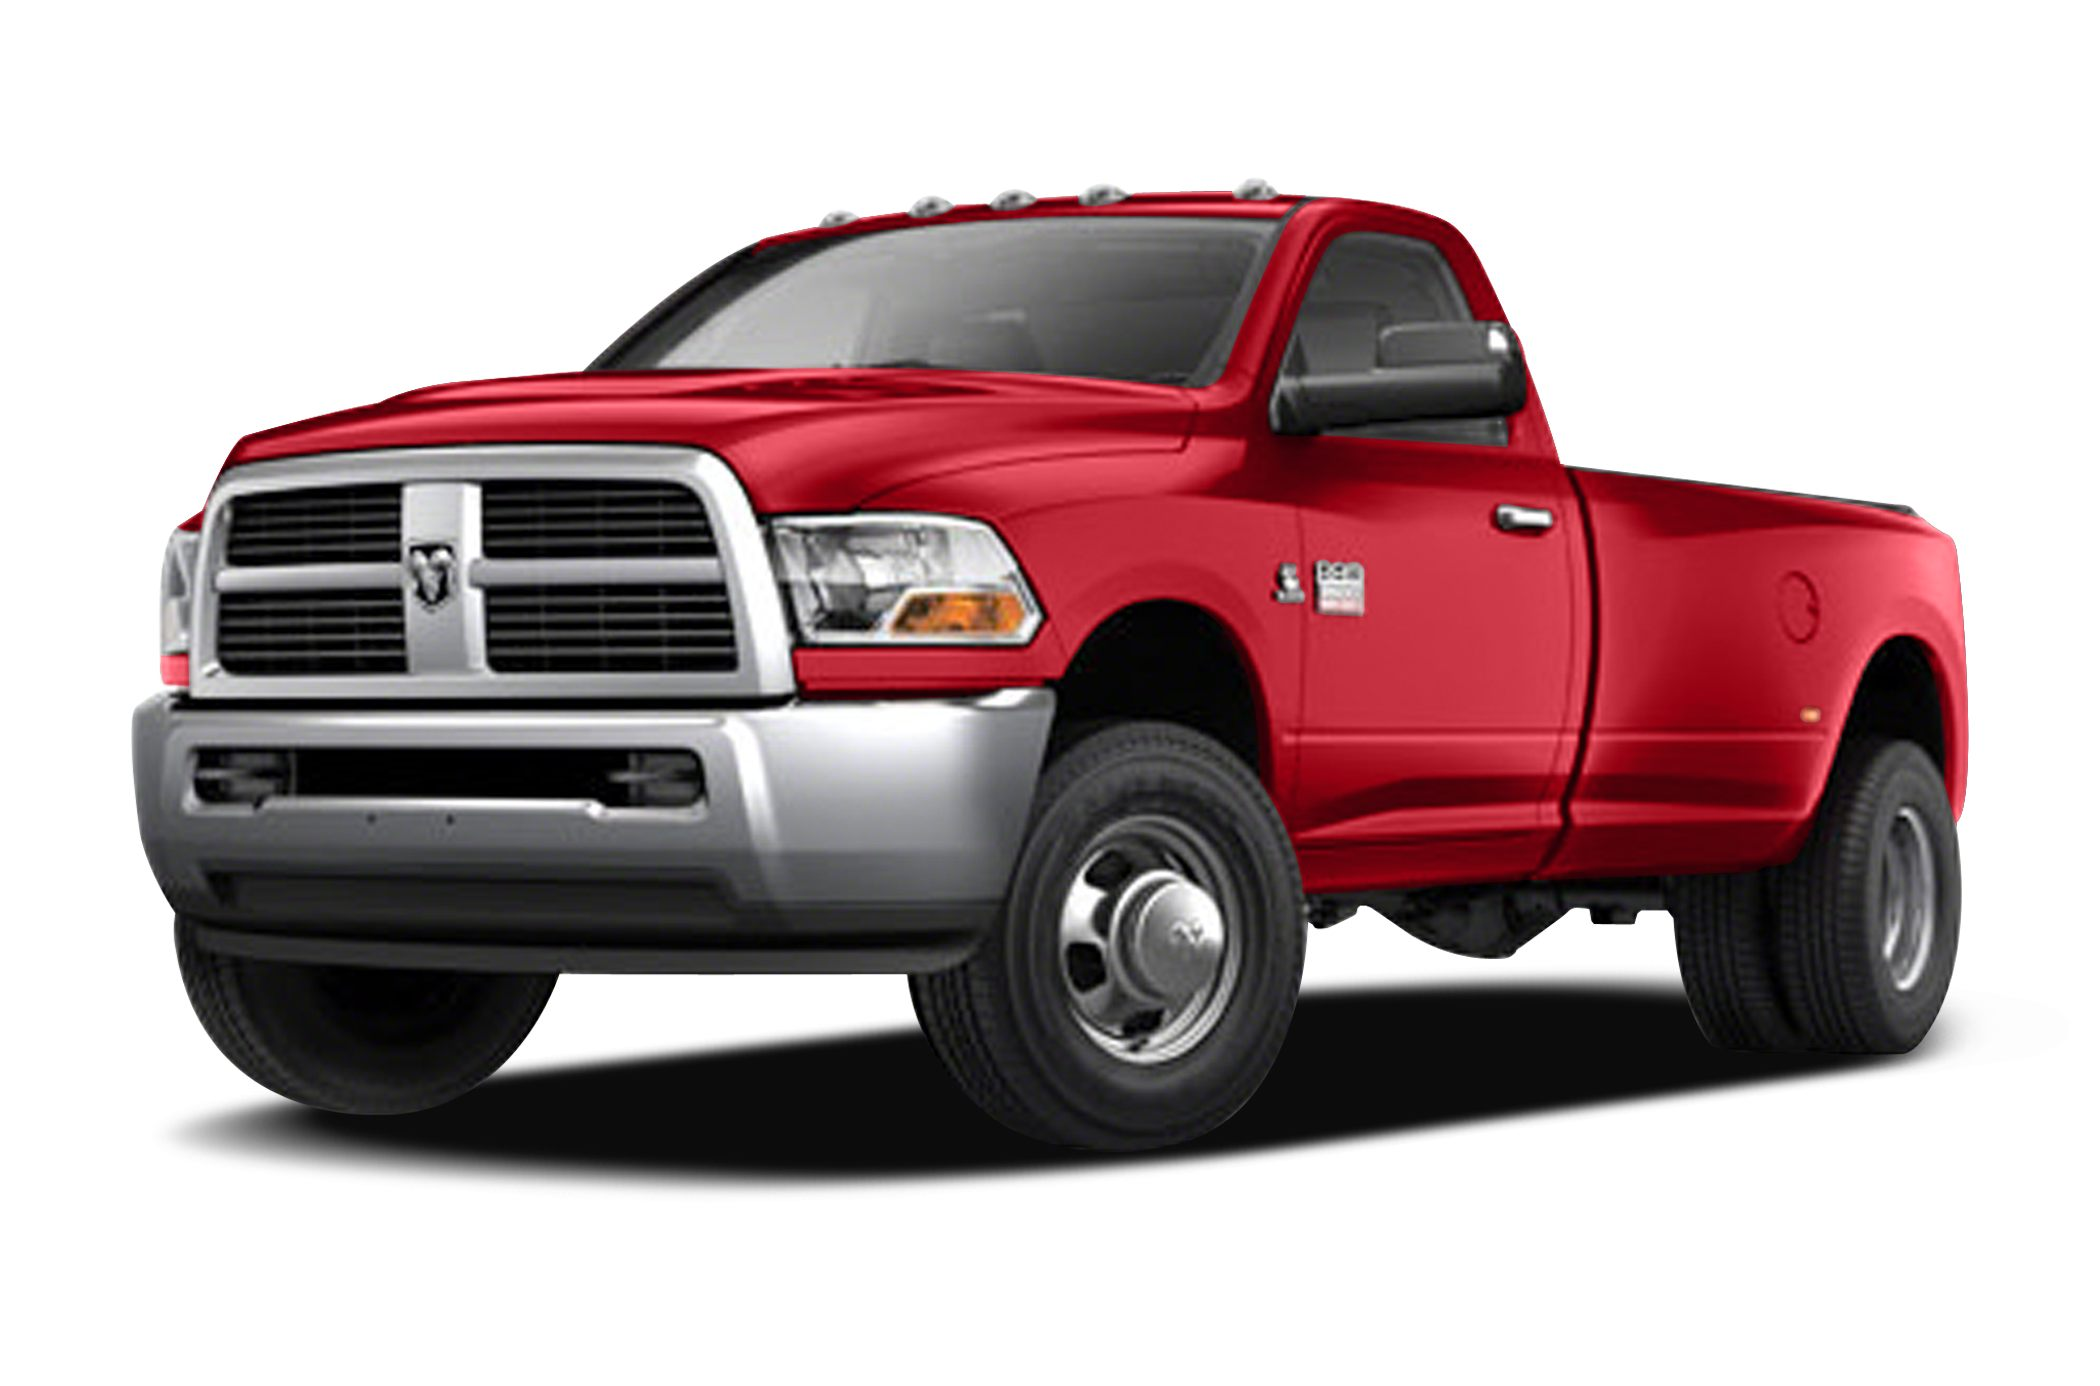 2012 RAM 3500 ST Crew Cab Pickup for sale in Anderson for $37,500 with 52,955 miles